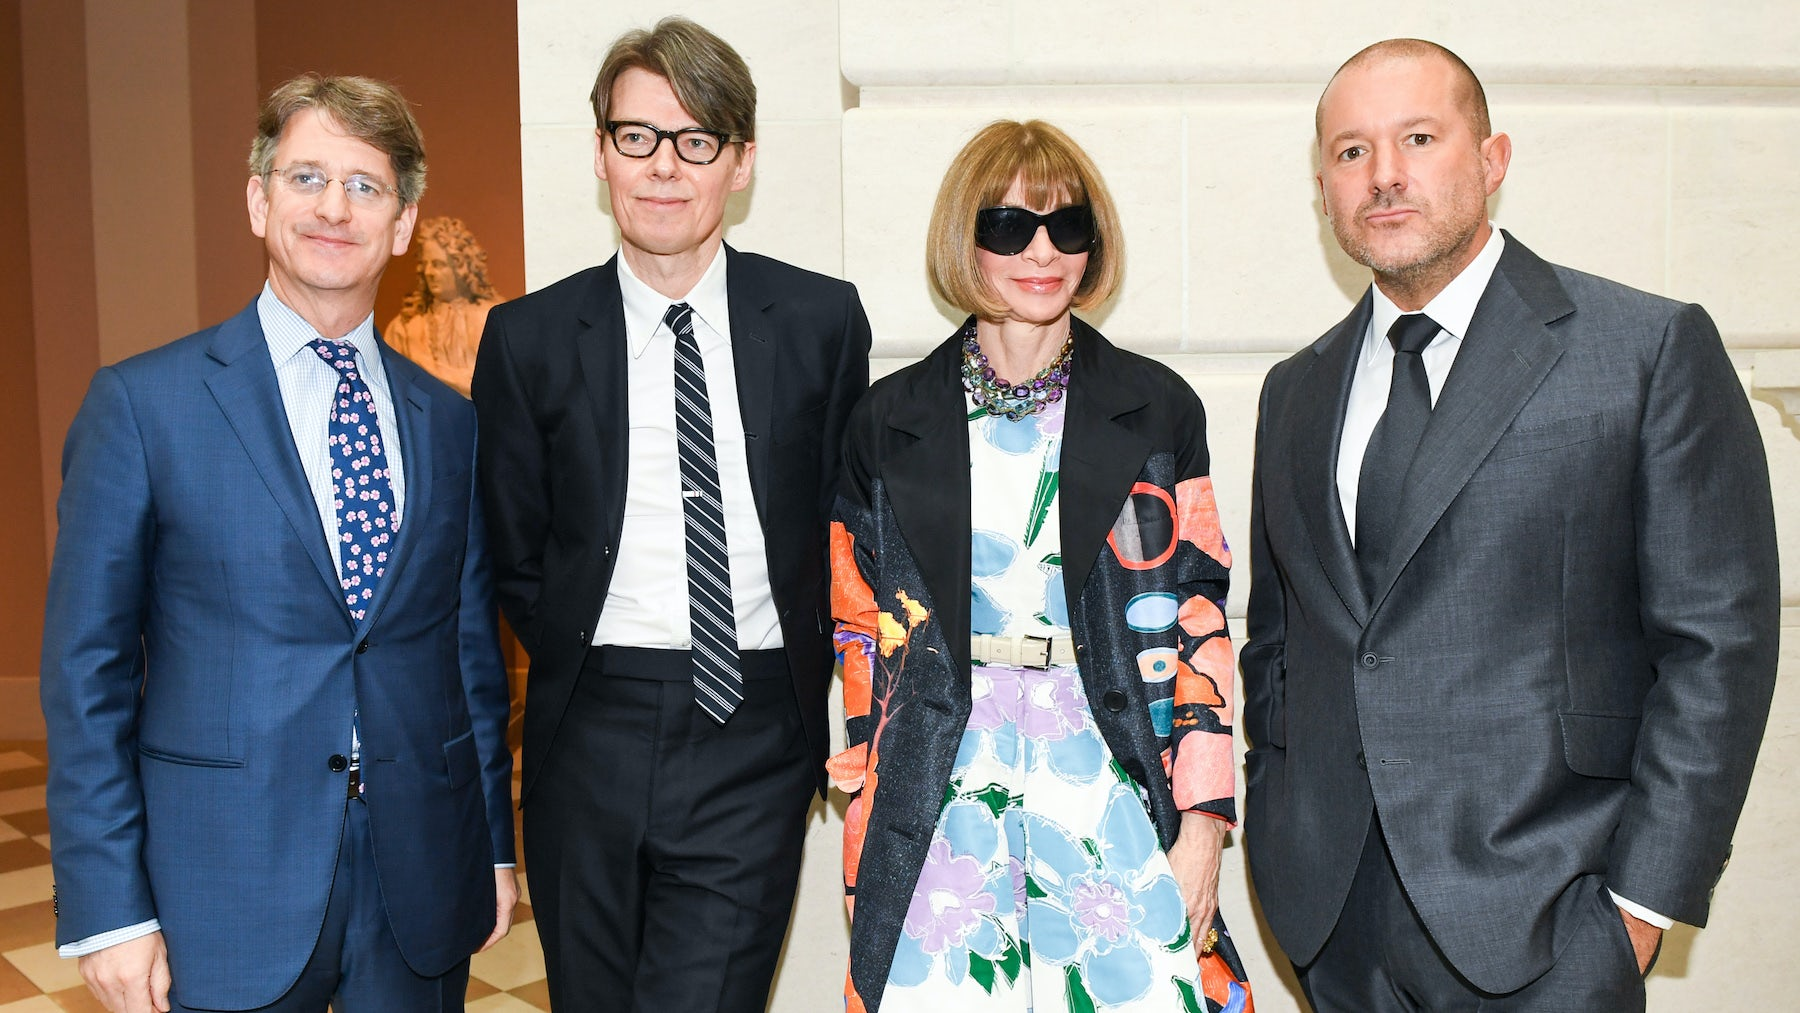 (L-R) Thomas Campbell, Andrew Bolton, Anna Wintour, Sir Jonathan Ive | Source: Courtesy of The Metropolitan Museum of Art/Joe Schildhorn/BFA.com